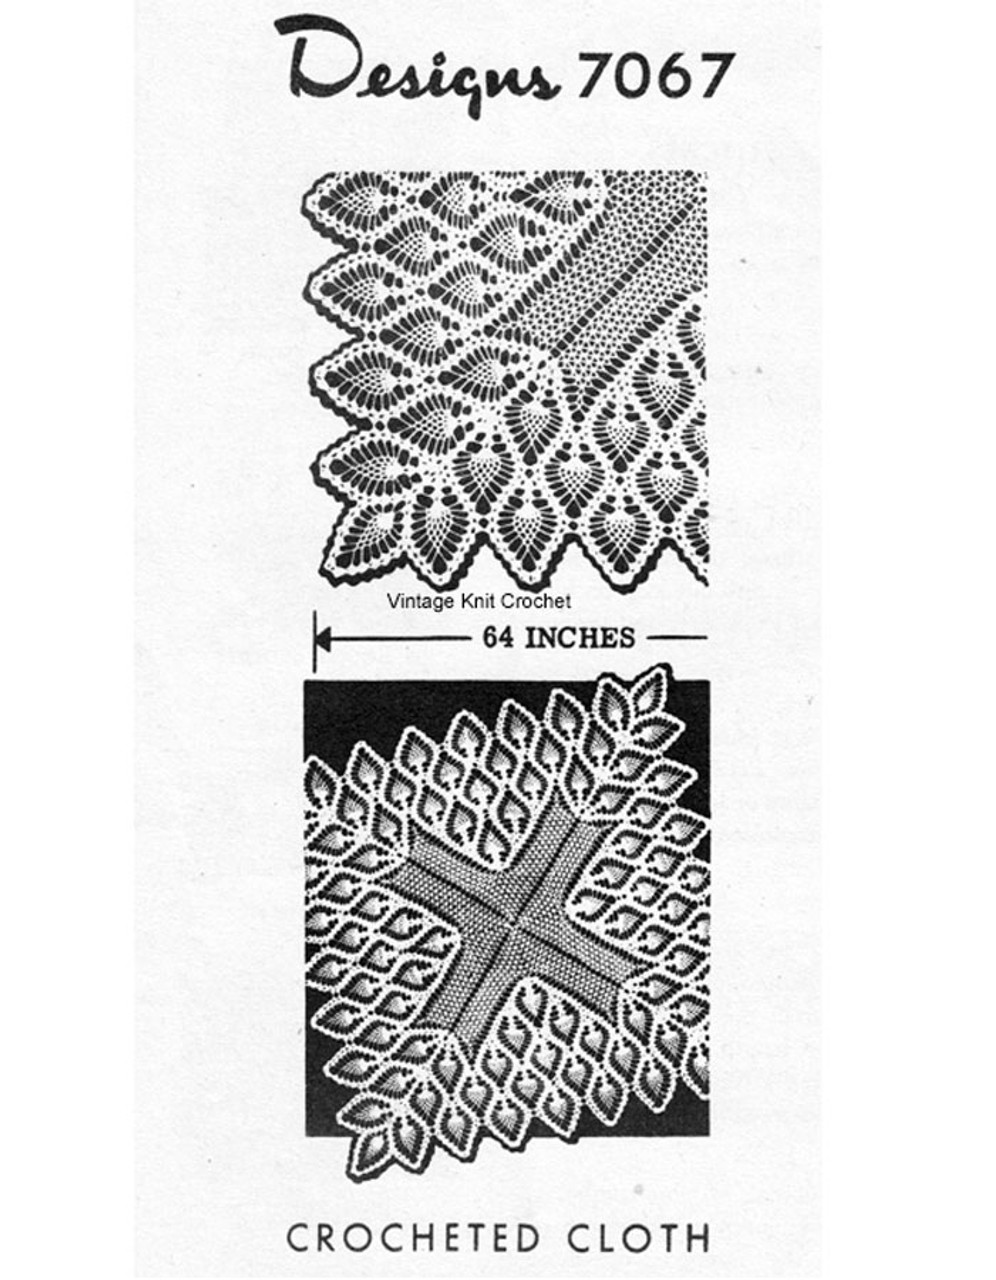 Square Crochet Tablecloth Pattern, Pineapple Design 7067